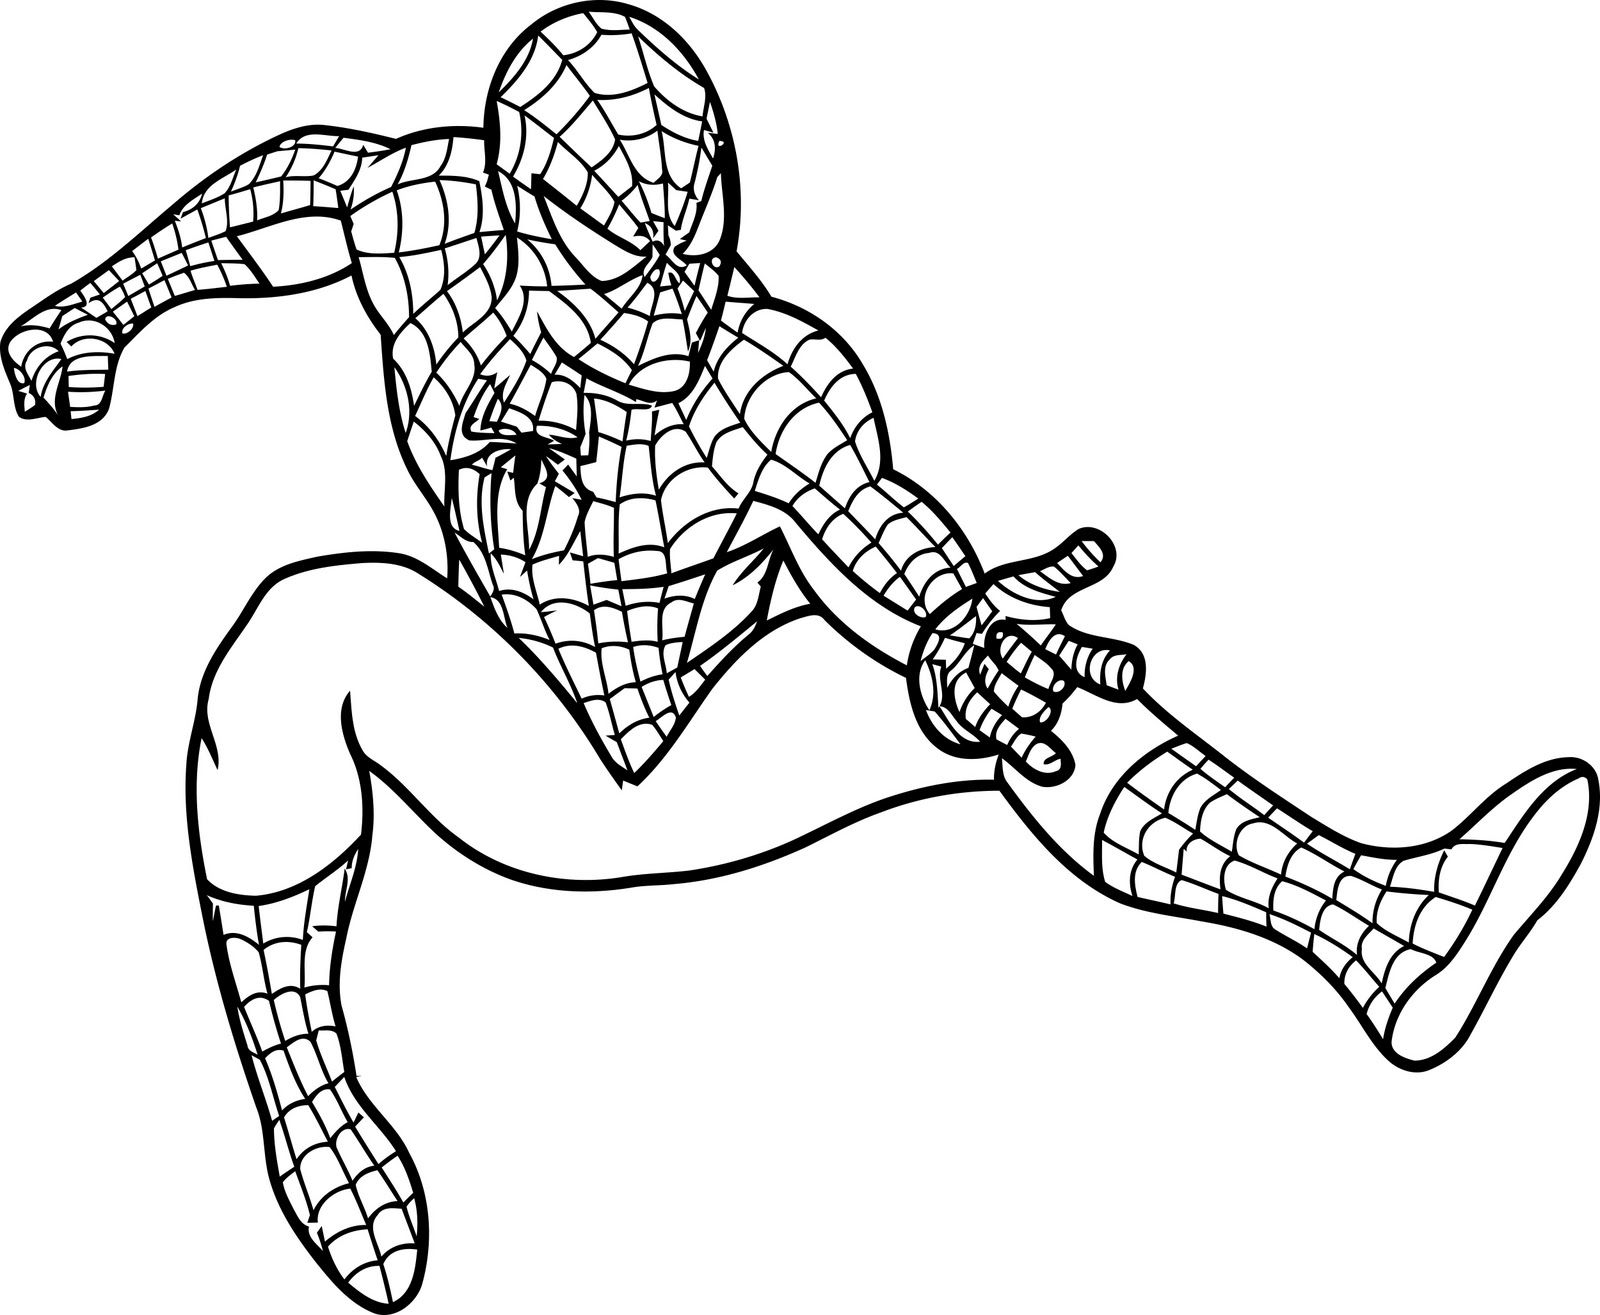 spiderman coloring pages free spiderman coloring pages for kids printable - Spiderman Coloring Page